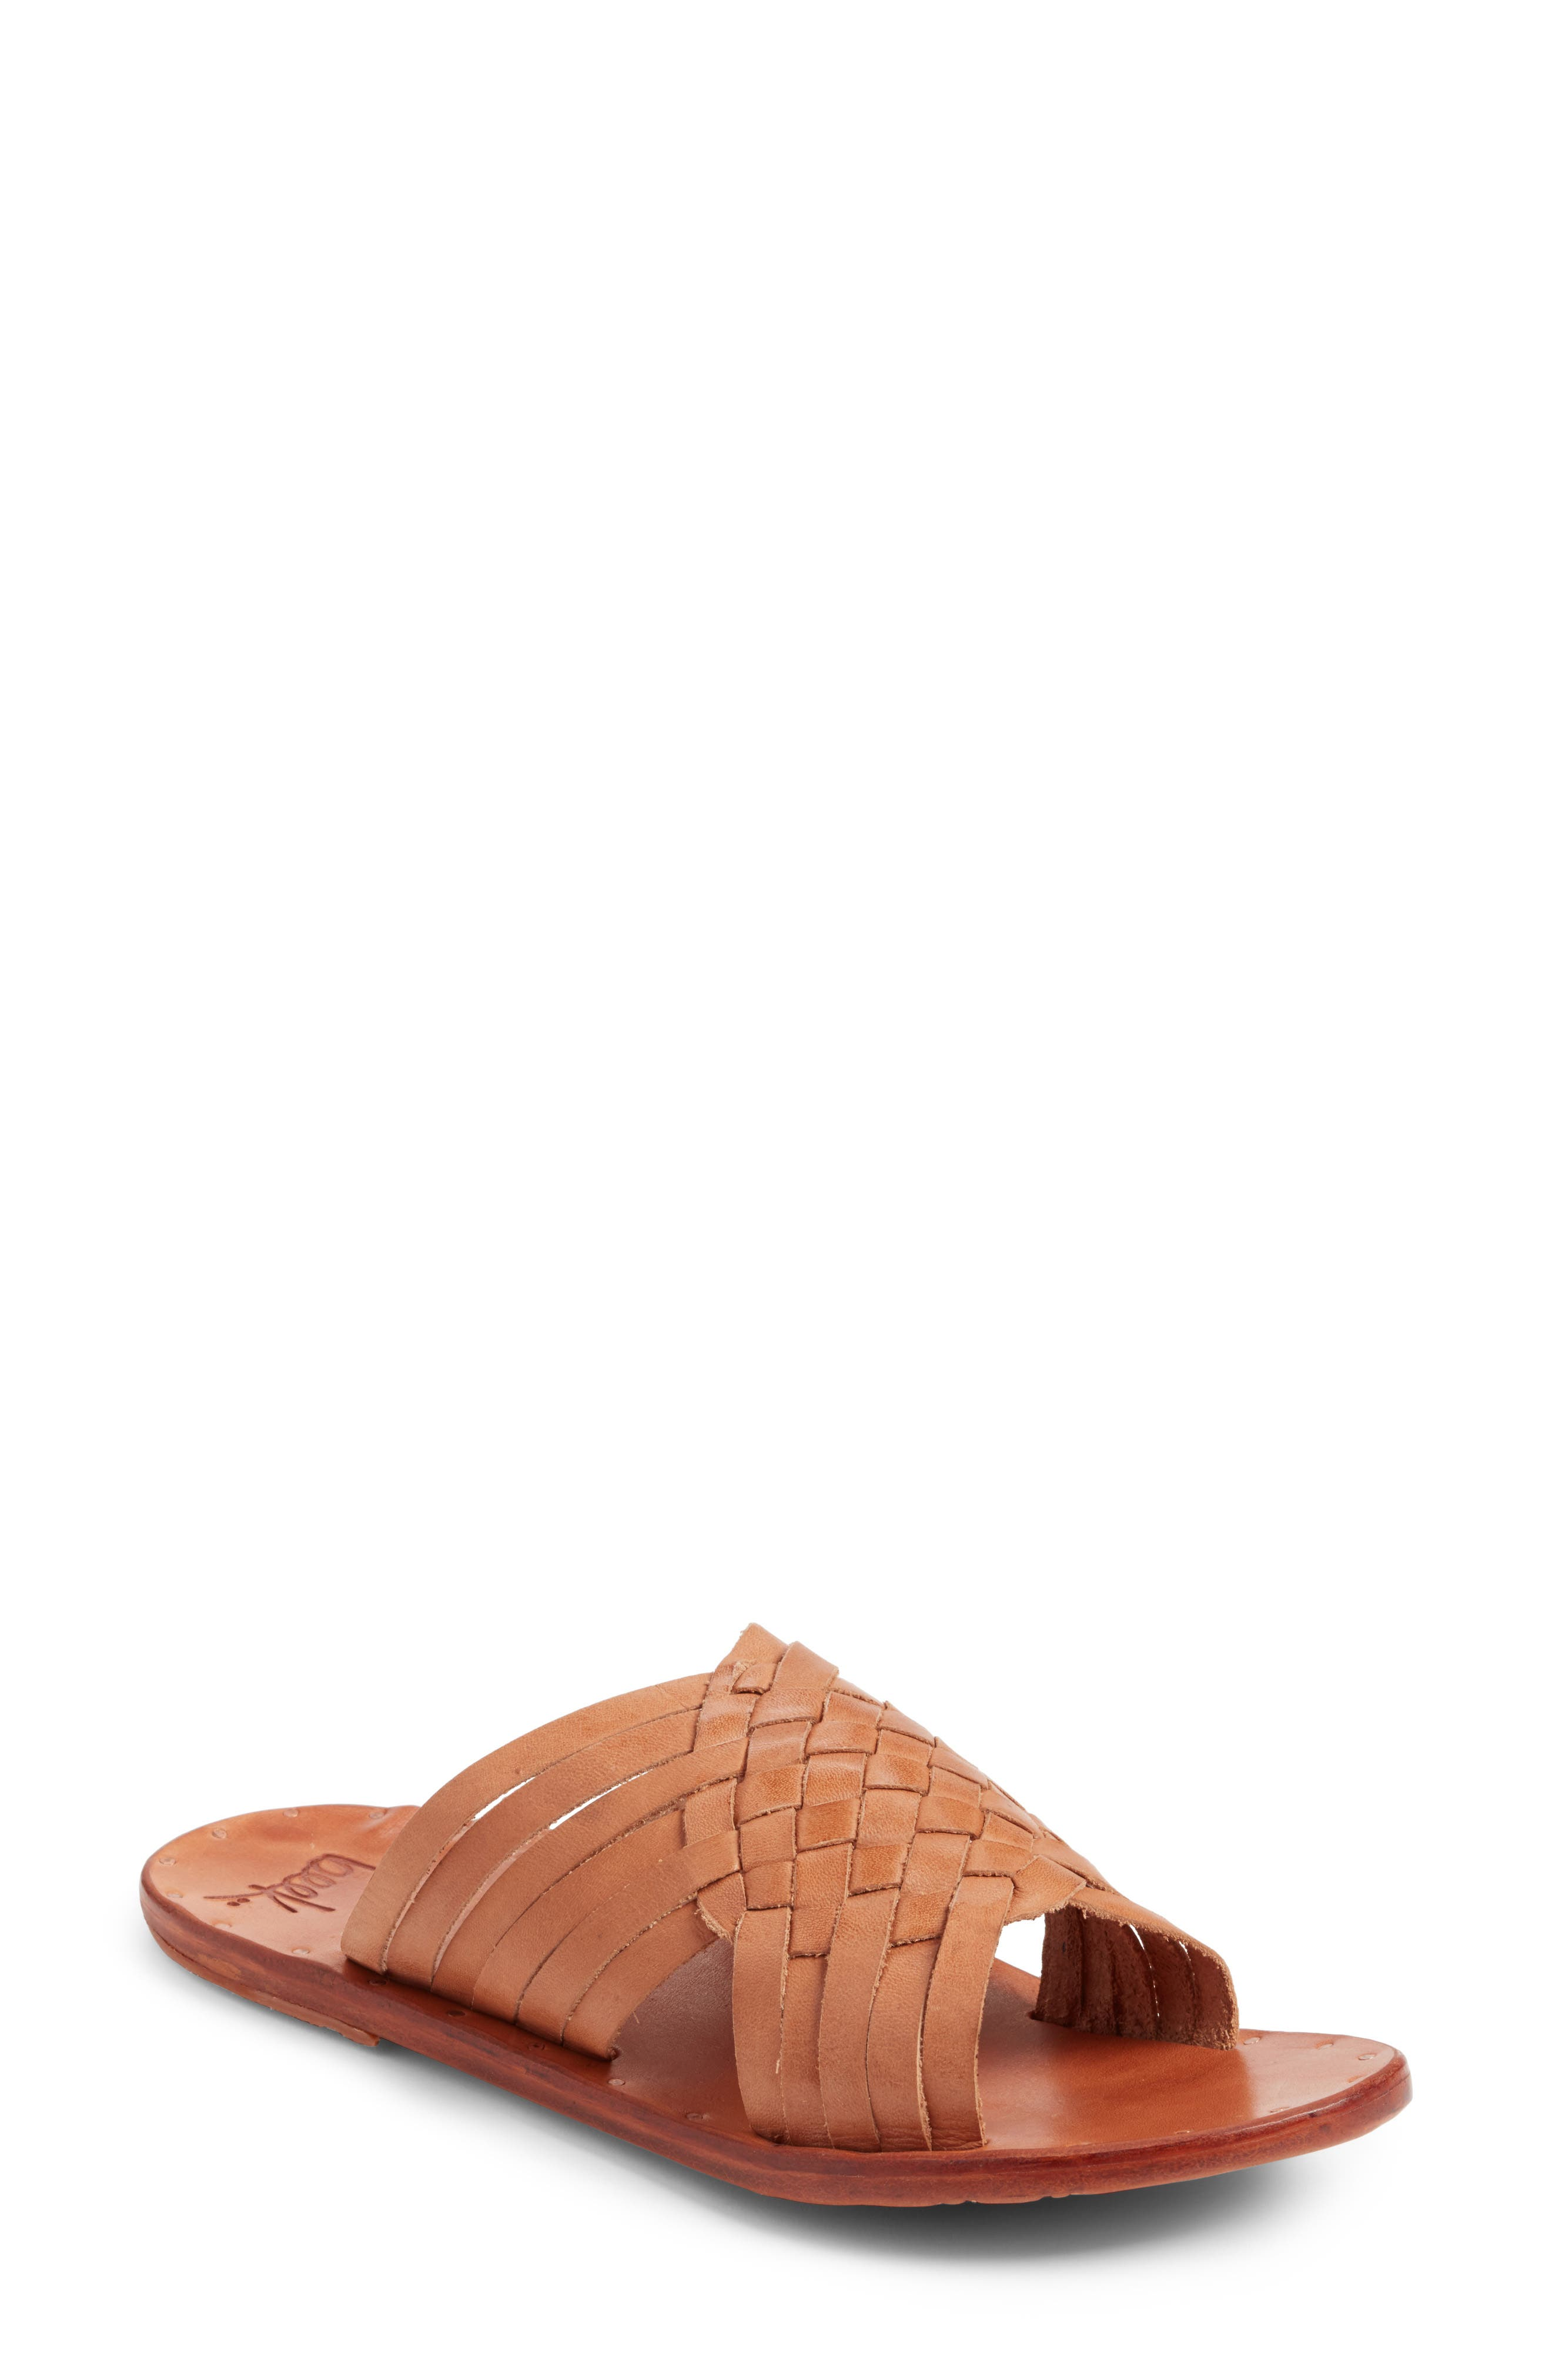 Alternate Image 1 Selected - Beek Swallow Sandal (Women)